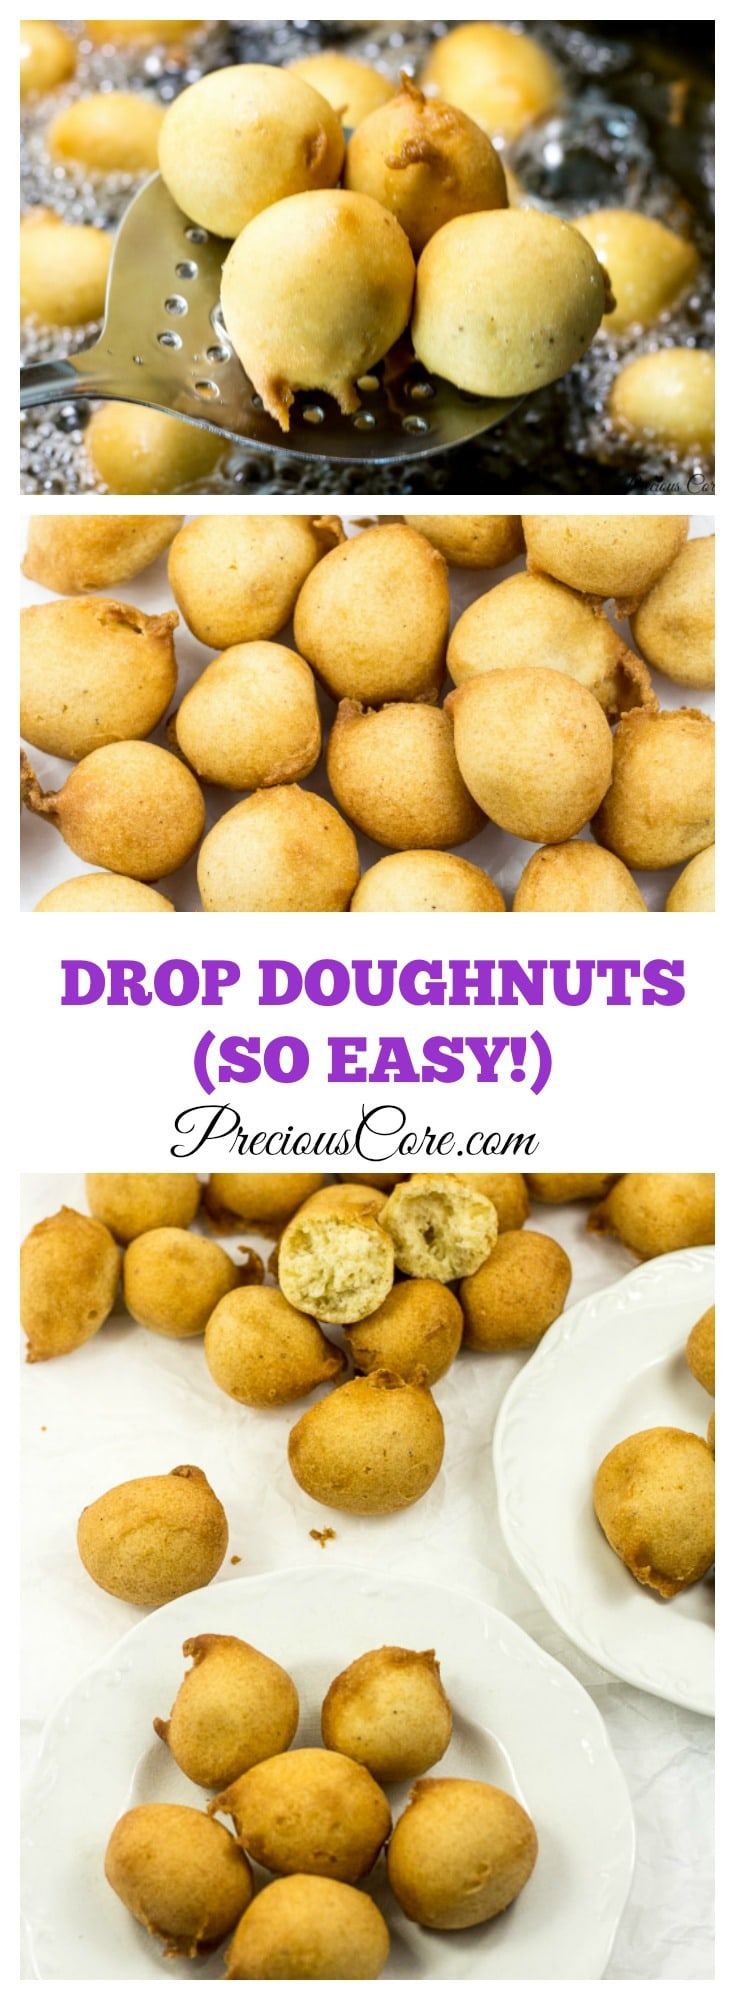 Easy Drop Doughnuts Recipe - Precious Core